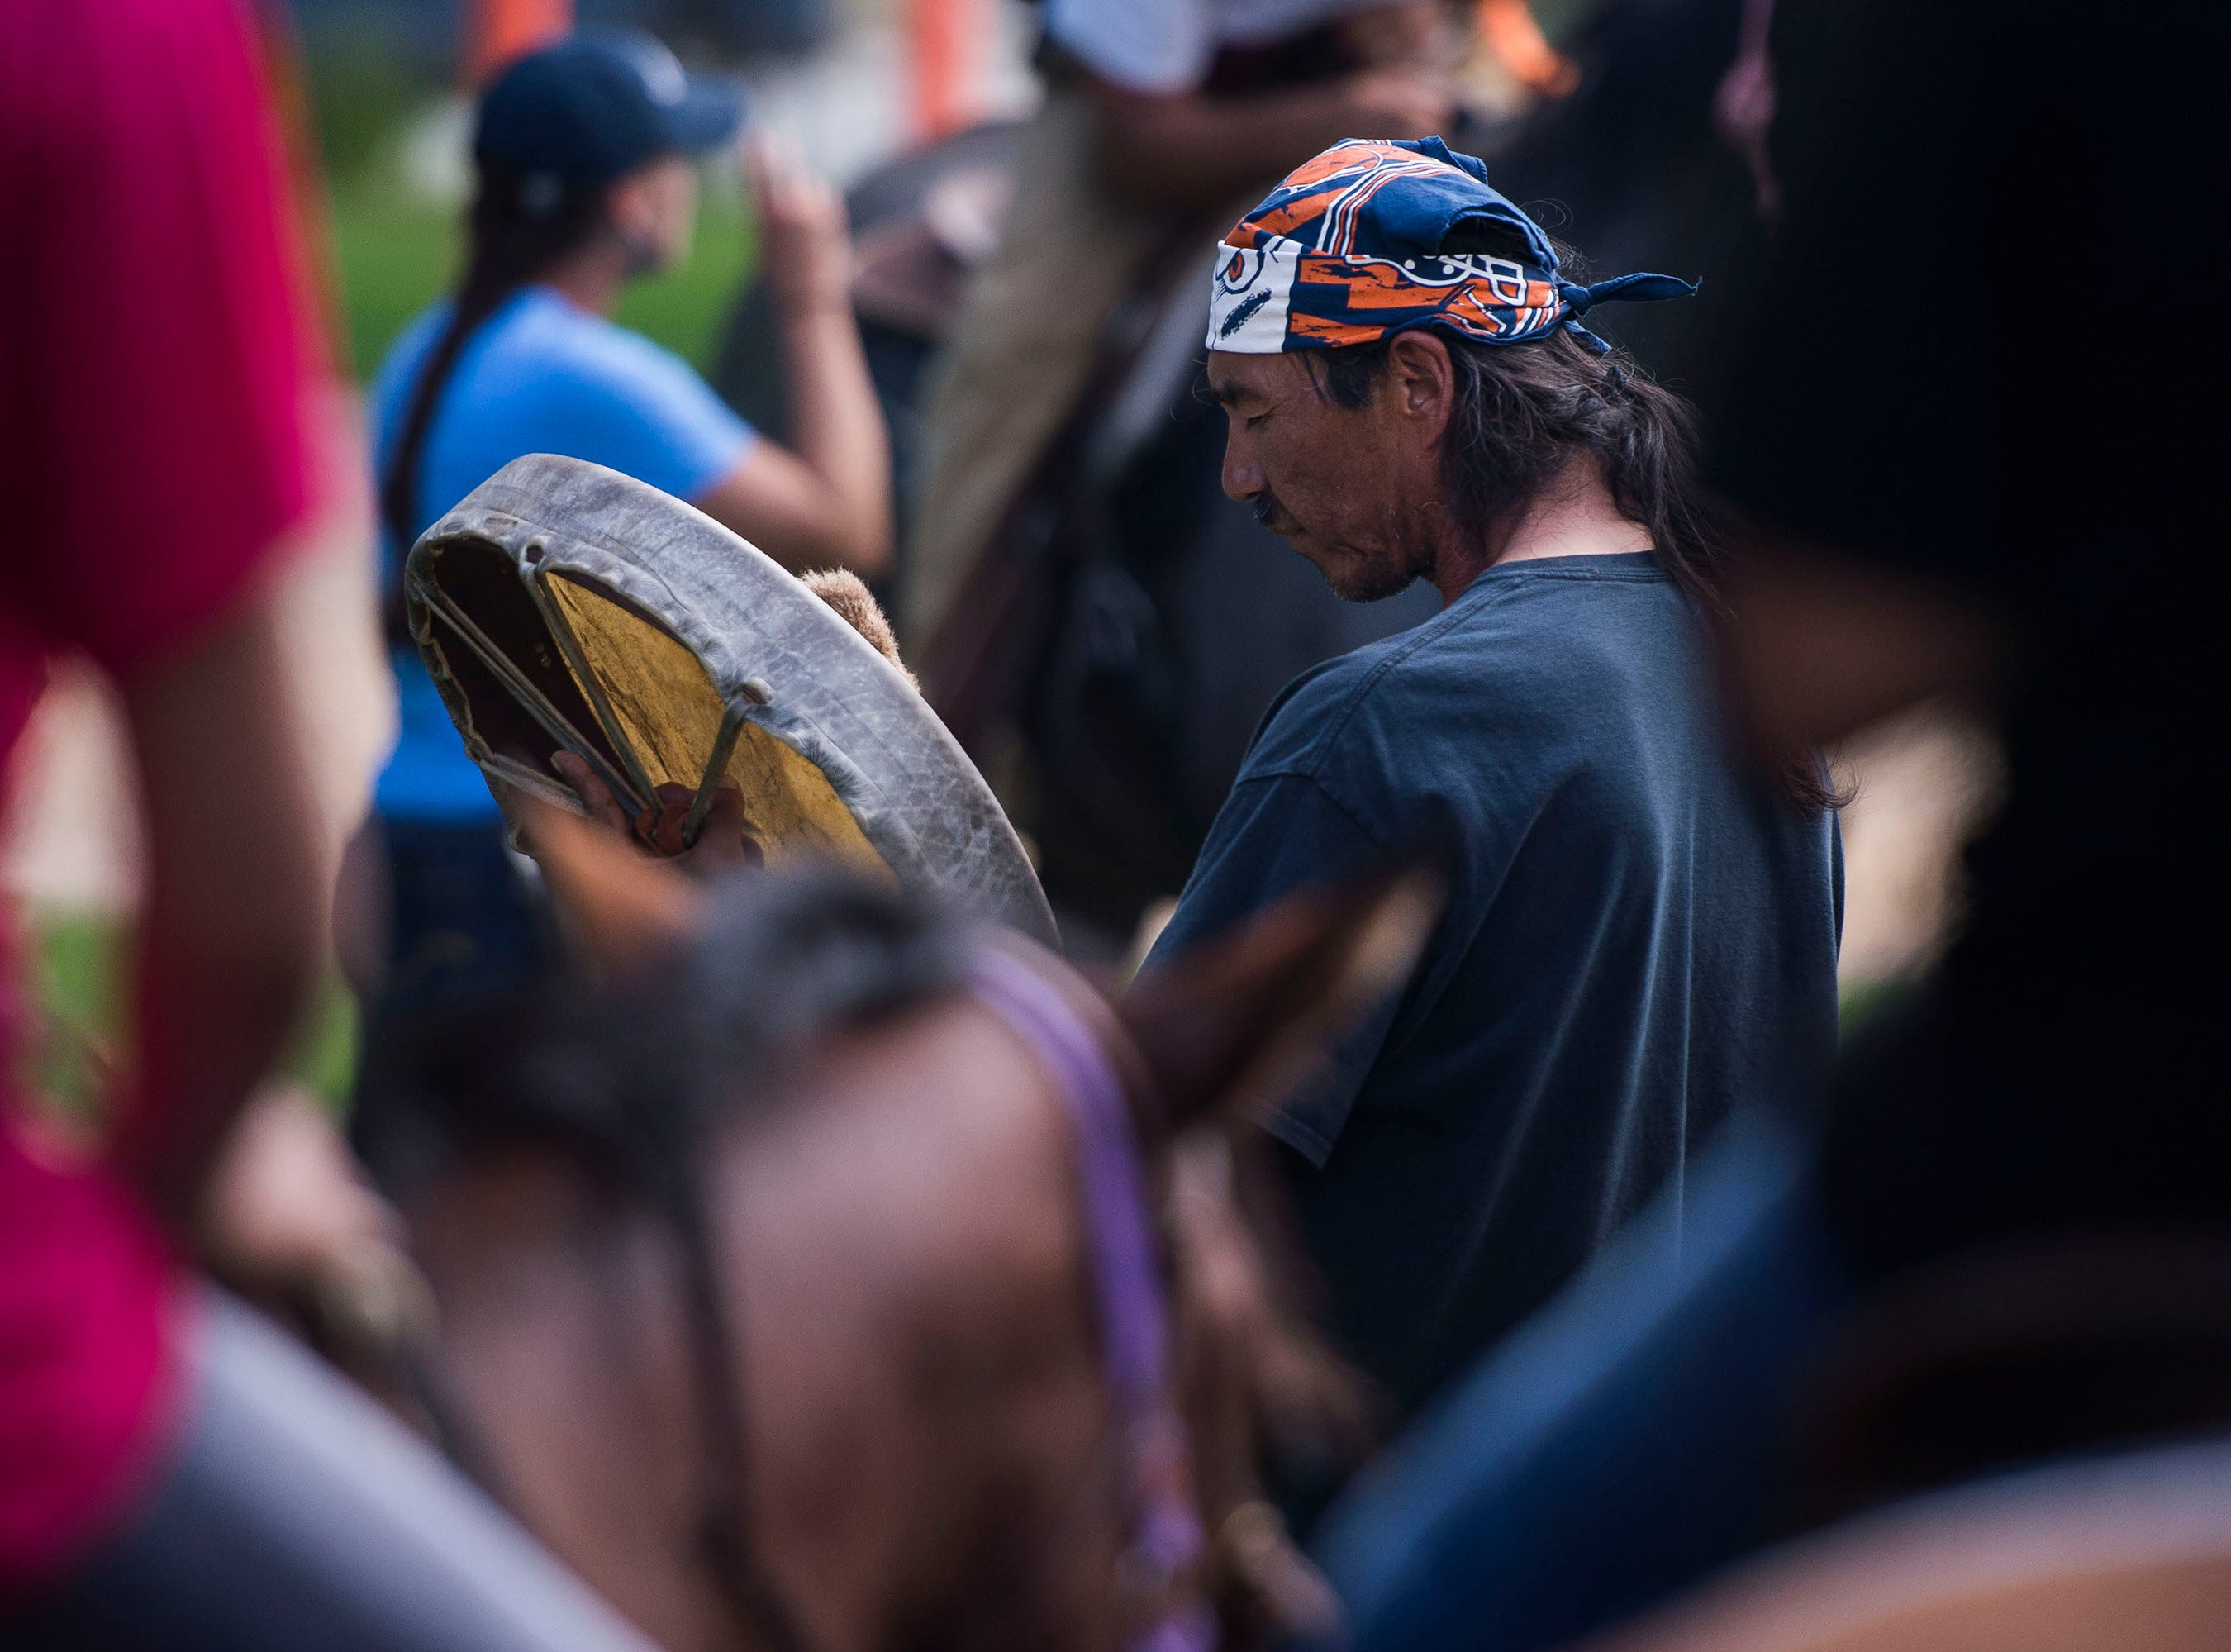 Northern Arapaho and Lakota tribe member Terry Spoonhunter performs a sacred drum prayer before the LakotaRide 2018 riders head north to Fort Collins on Thursday, July 19, 2018, at Namaqua Park in Loveland, Colo.